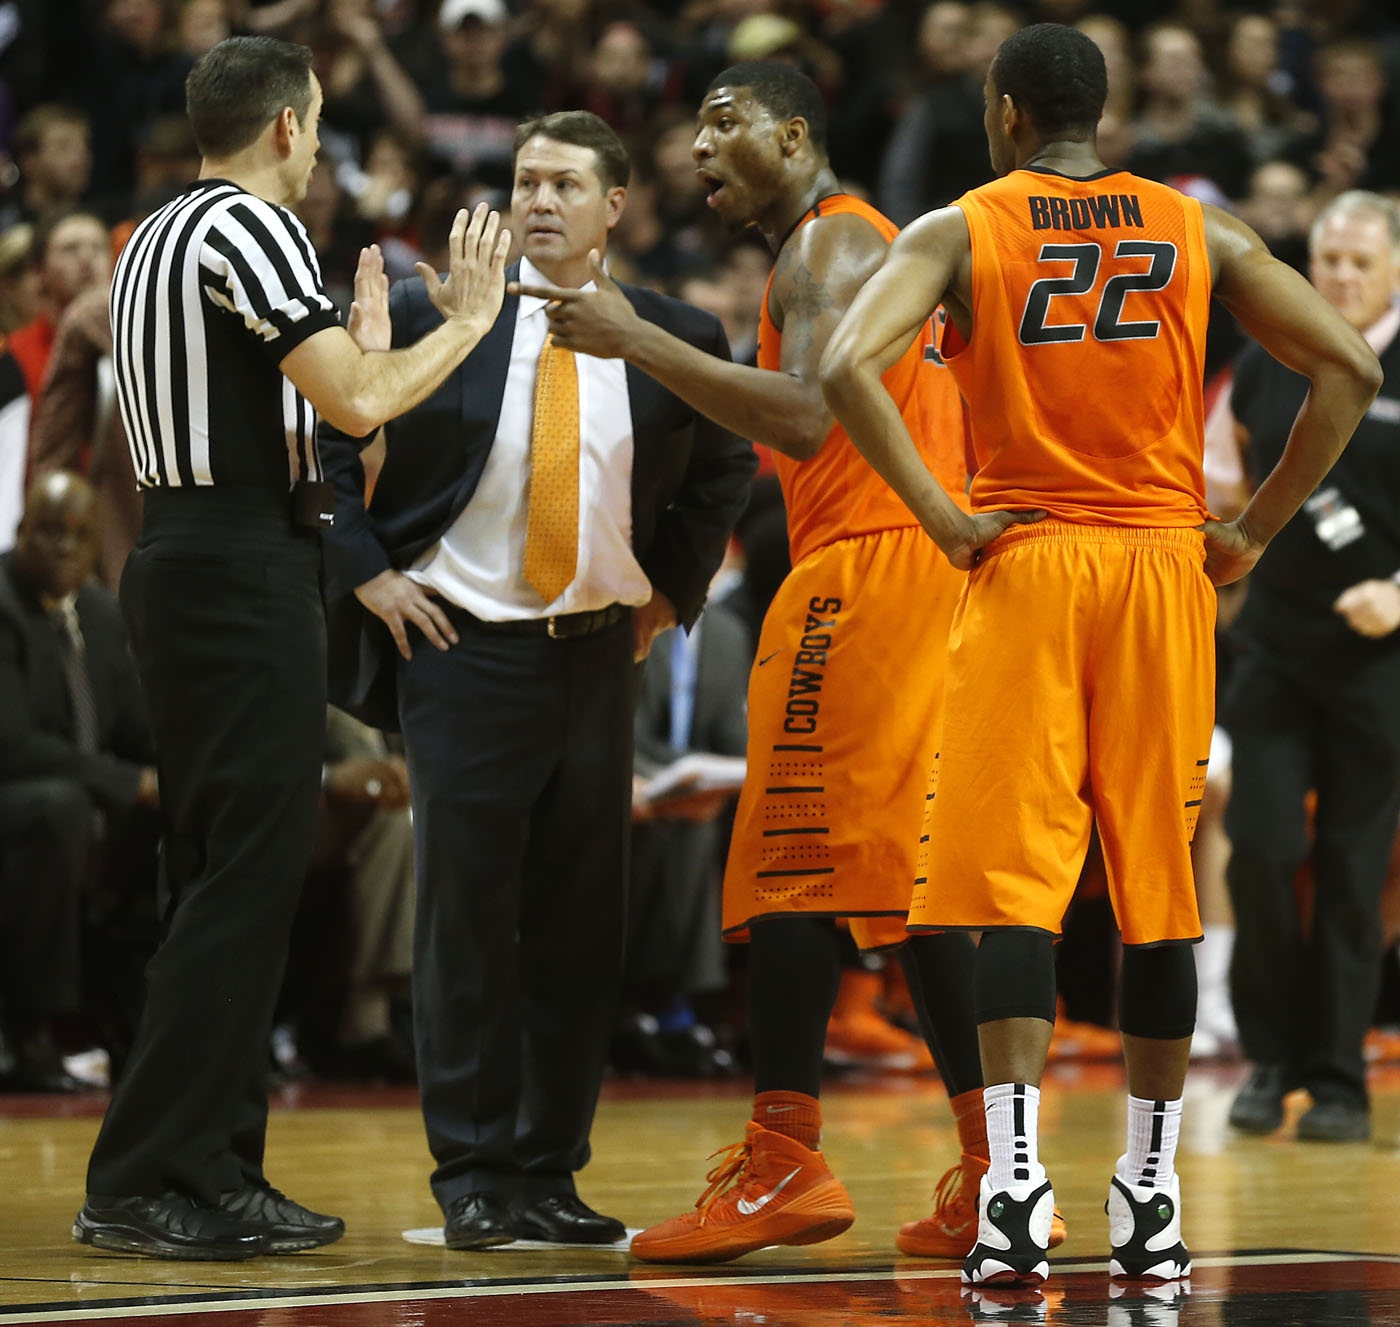 Oklahoma State coach Travis Ford, center, listens to an official with Marcus Smart after Smart shoved a spectator in Lubbock, Texas.